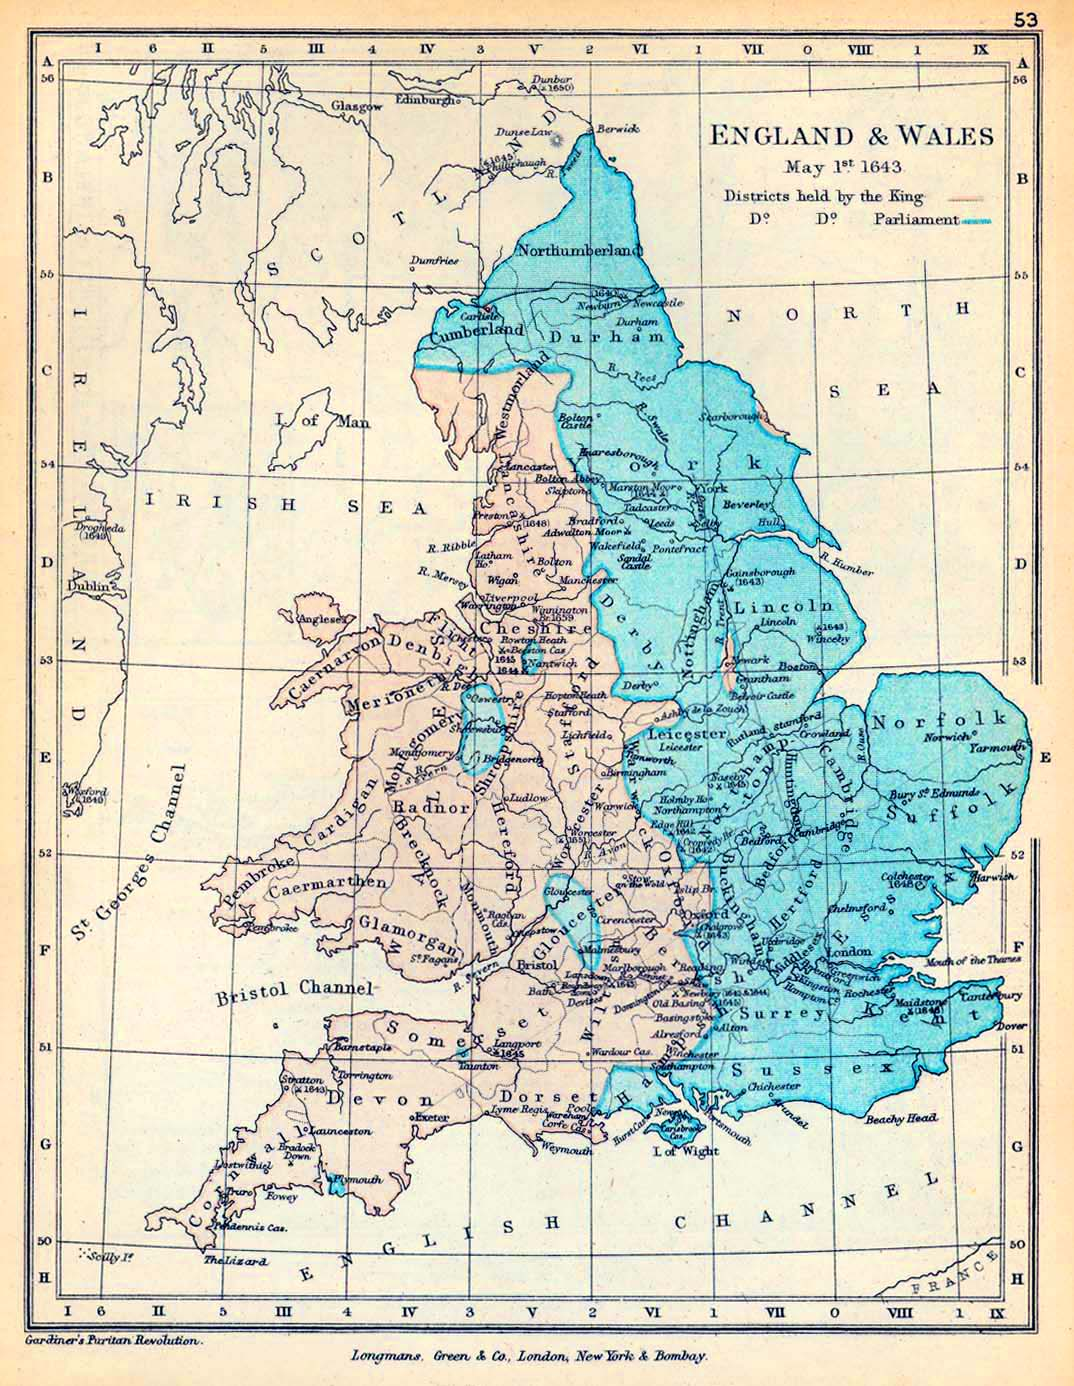 Map of England and Wales May 1, 1643